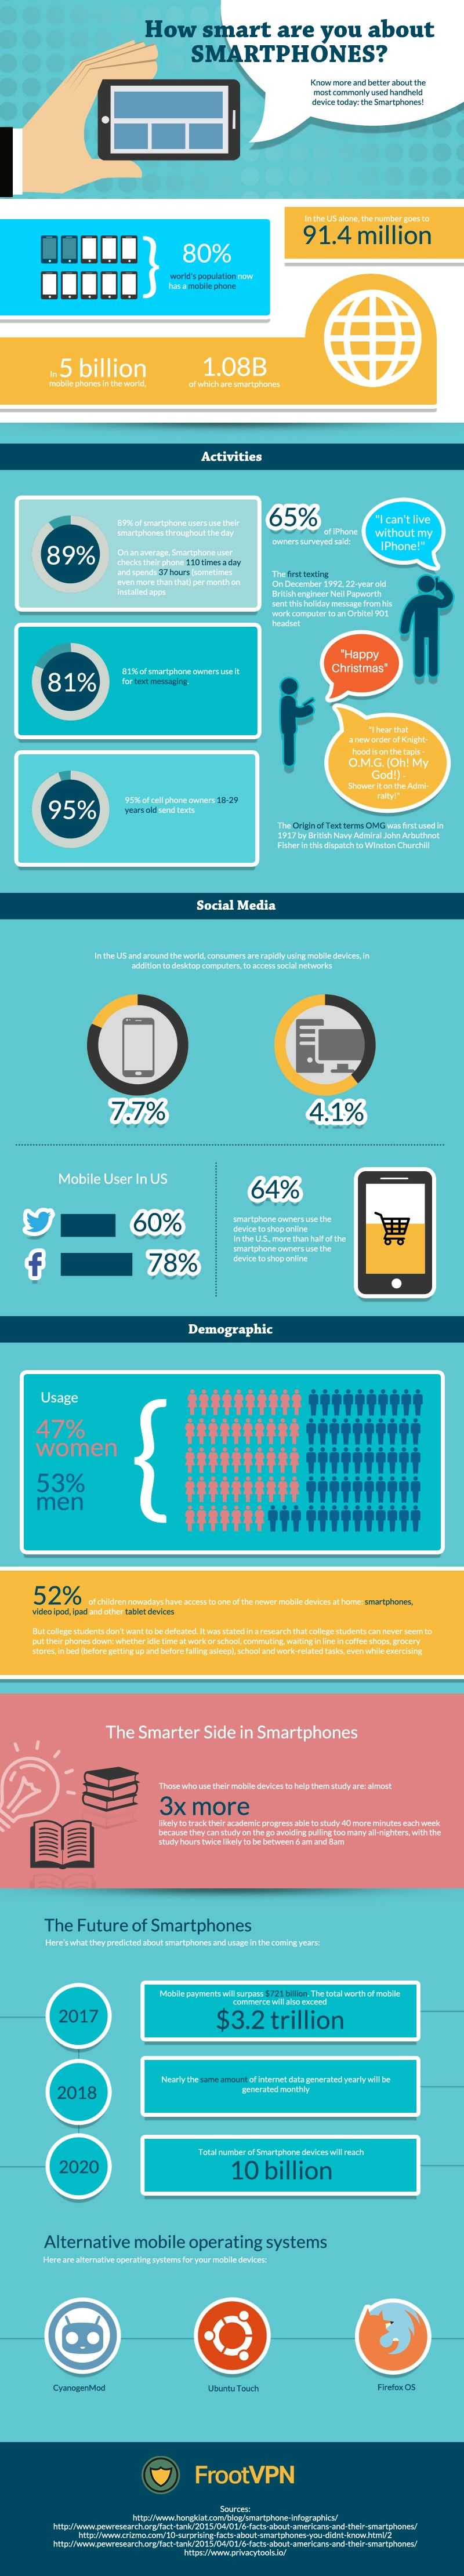 How Smart Are You About Smartphone?